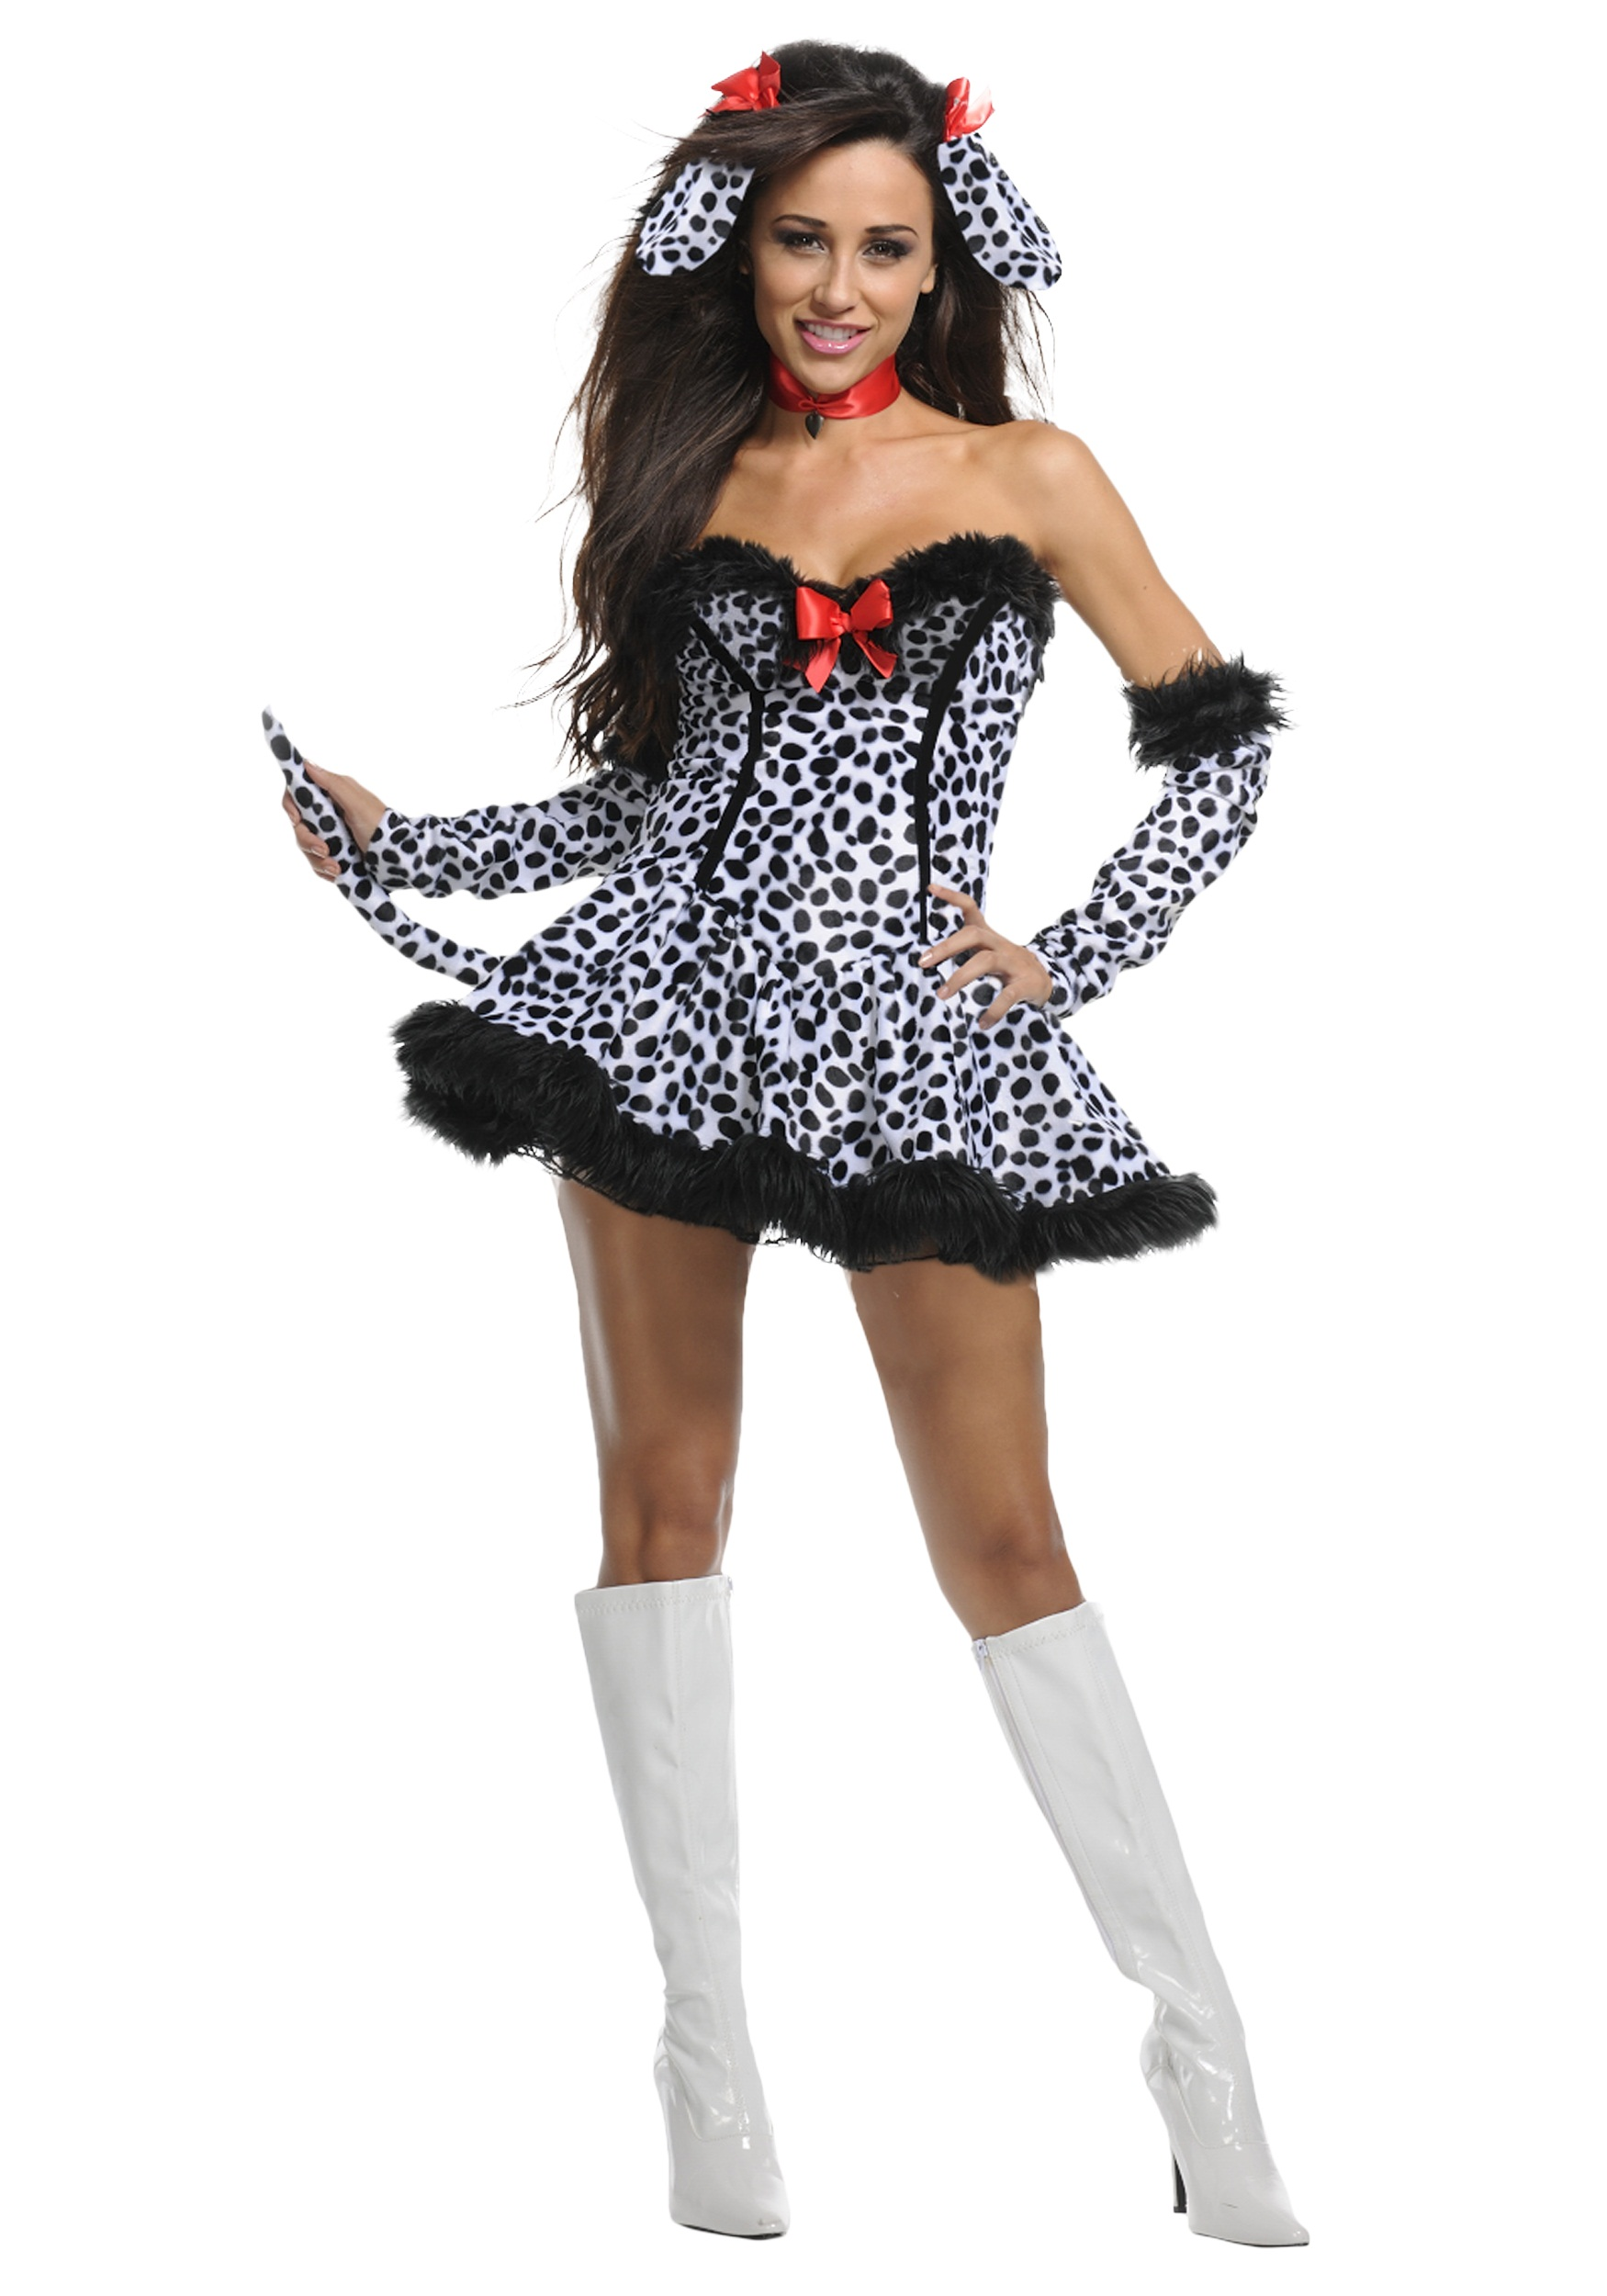 Exclusive Sexy Dalmatian Costume  sc 1 st  Halloween Costumes & Exclusive Sexy Dalmatian Costume - Halloween Costumes